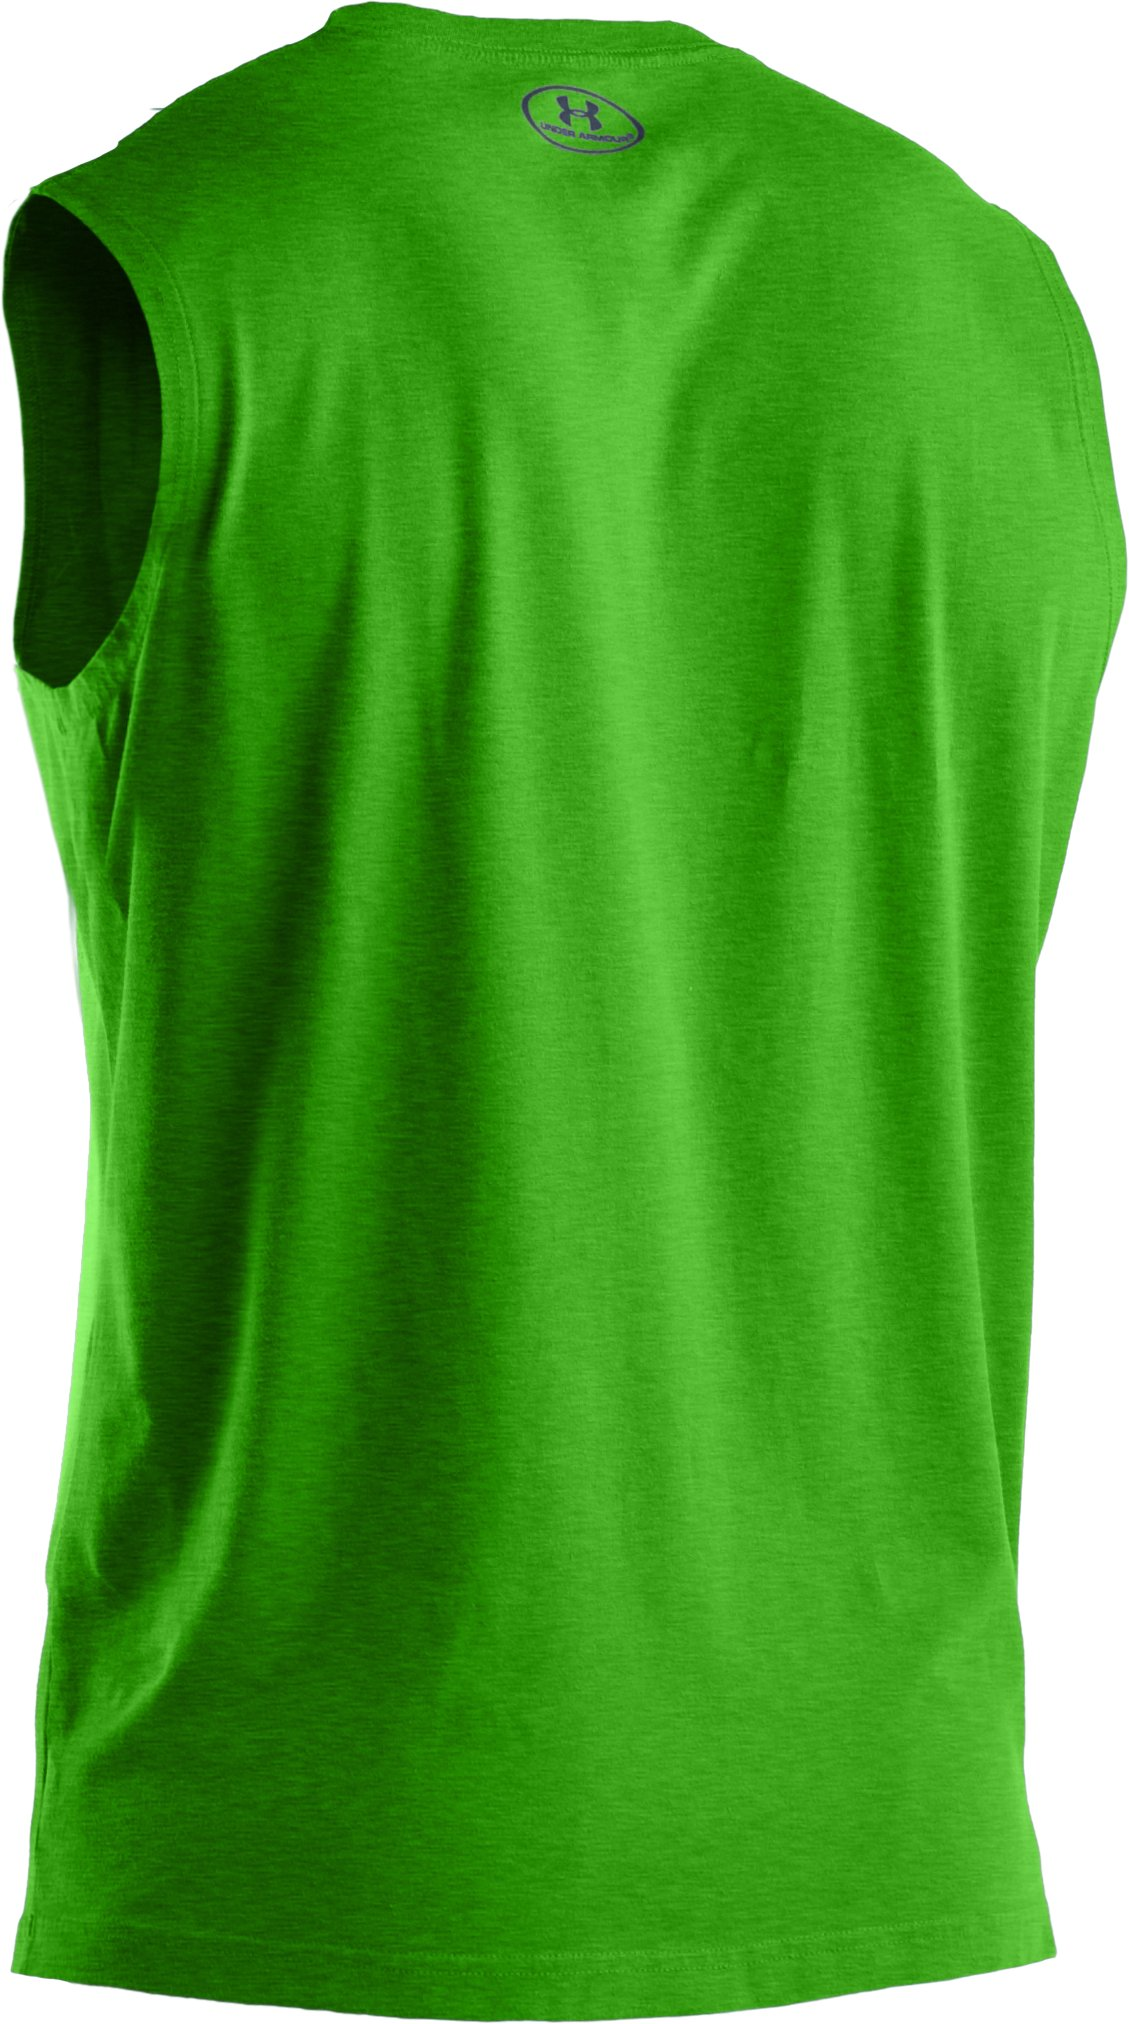 Men's Charged Cotton® Sleeveless T-shirt, PARROT GREEN, undefined